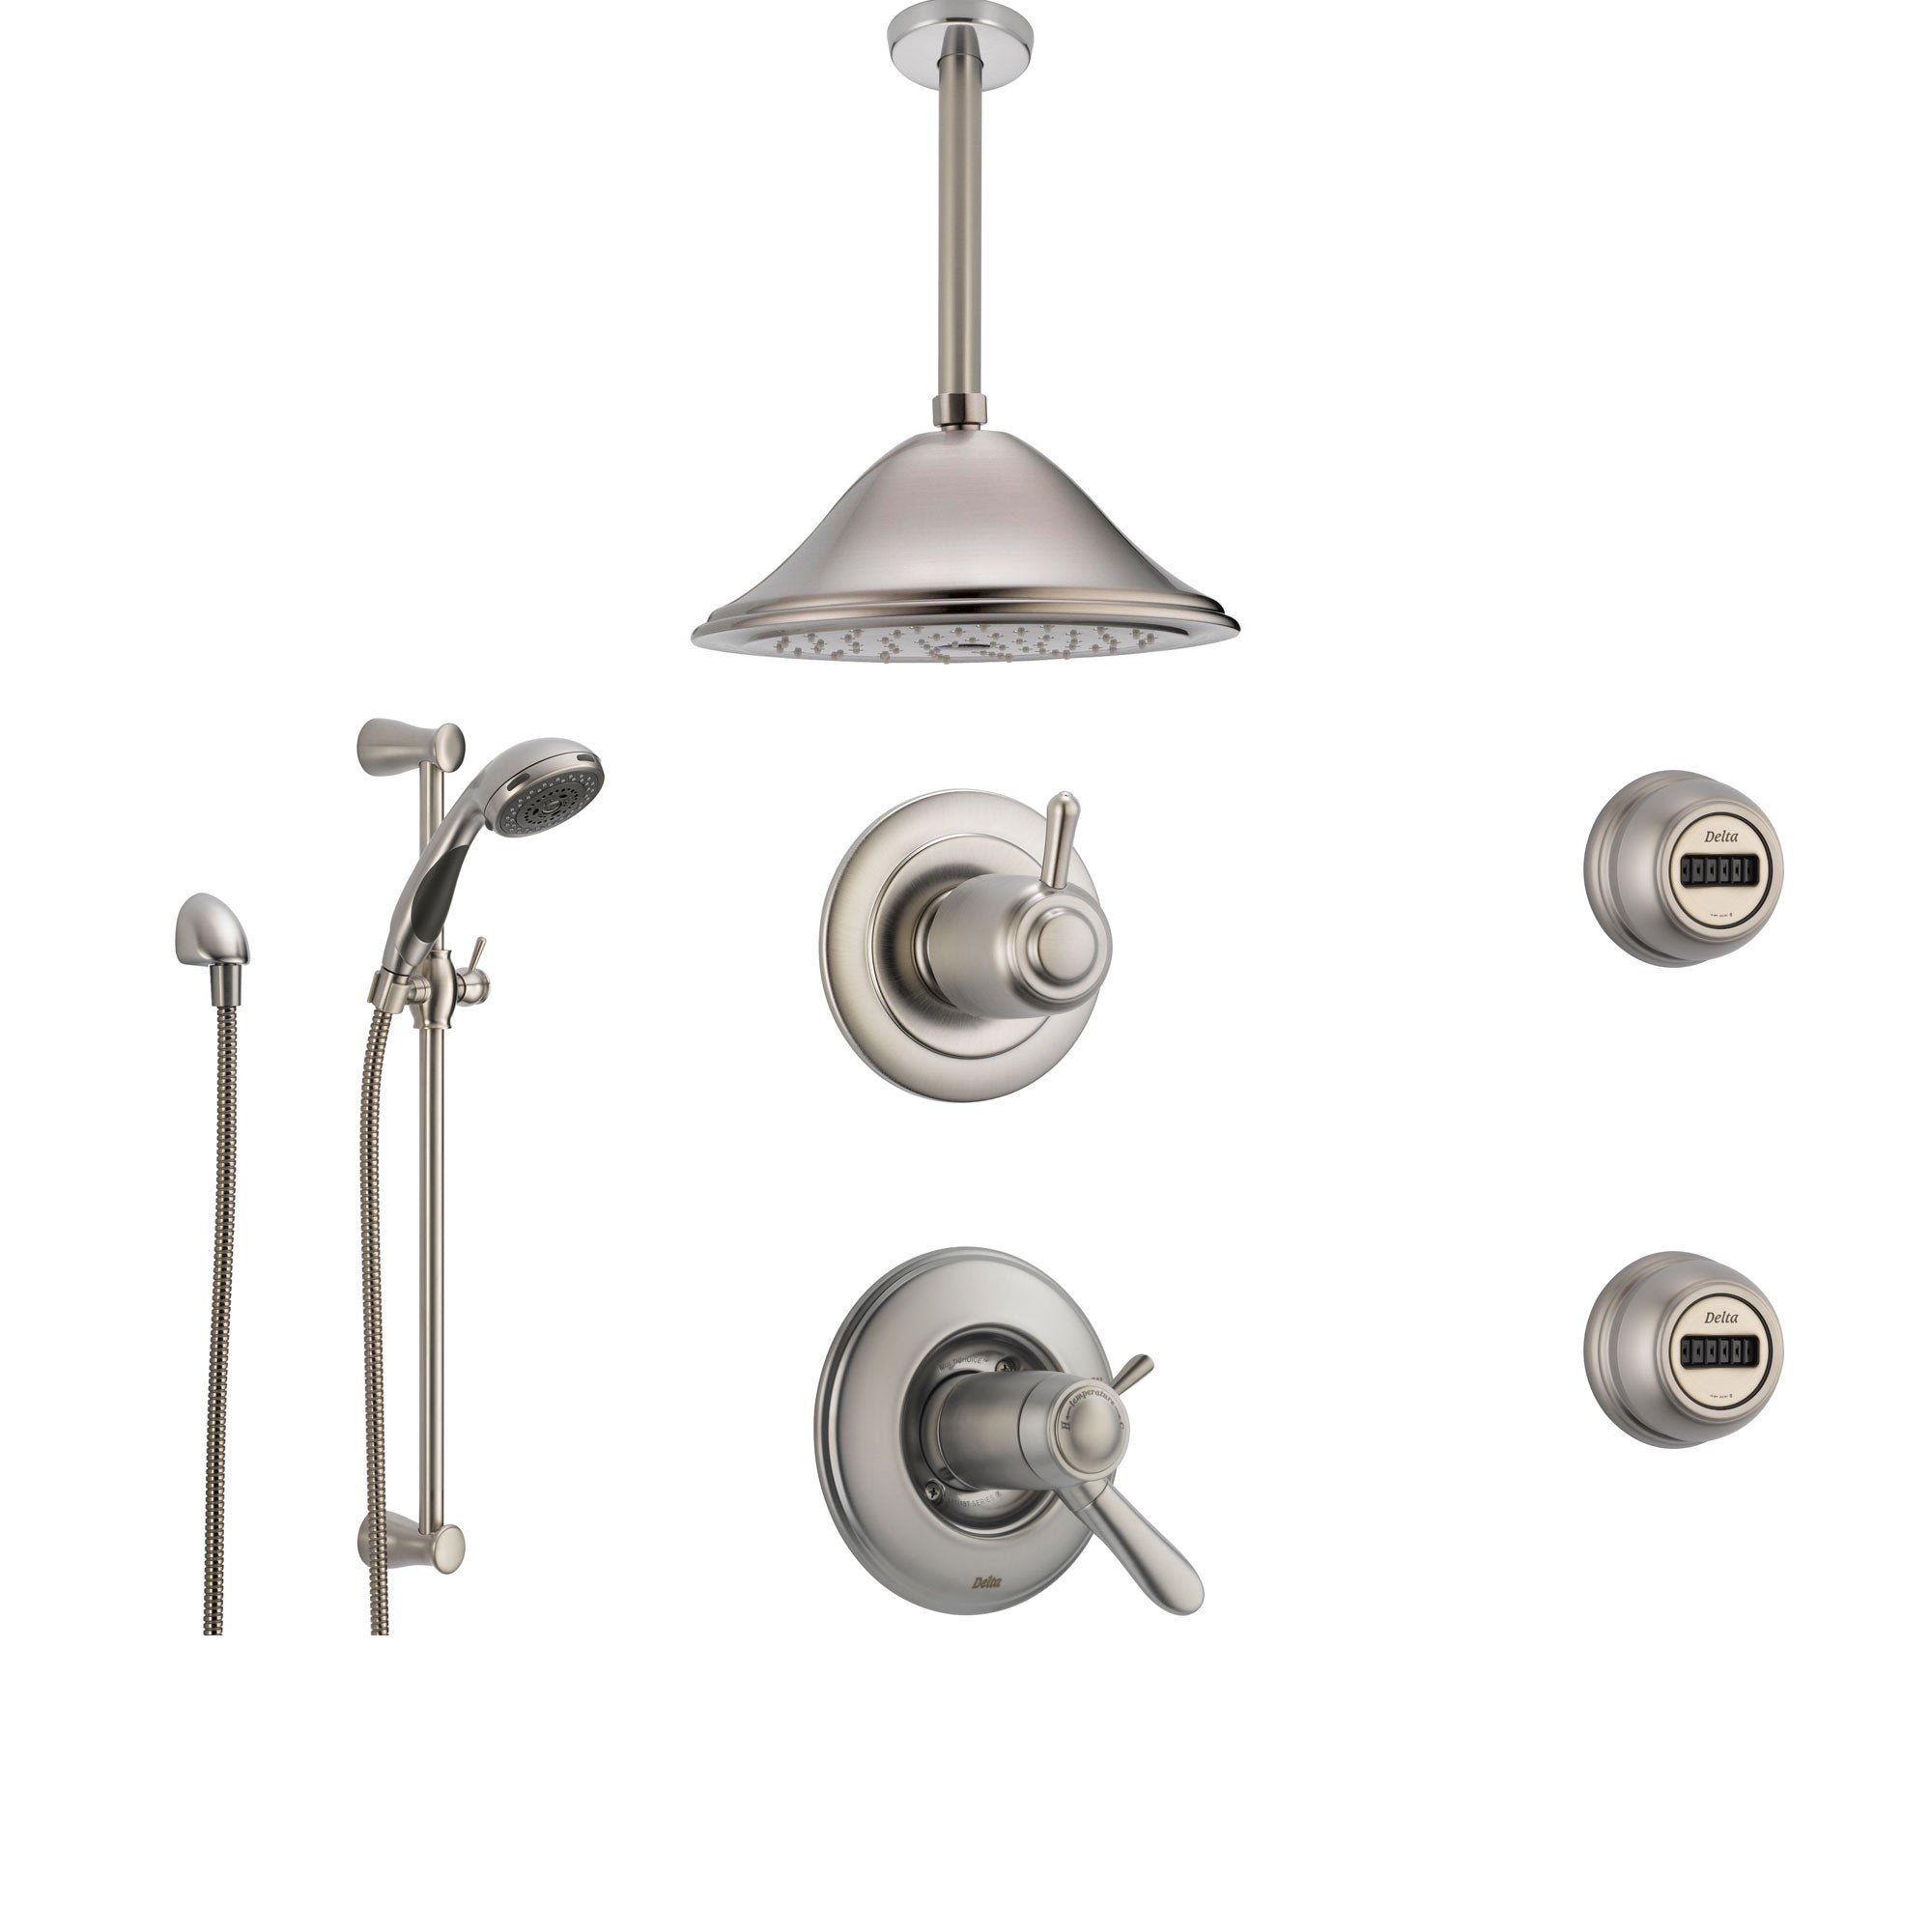 Wonderful Delta Lahara Stainless Steel Shower System With Thermostatic Shower Handle,  6 Setting Diverter,